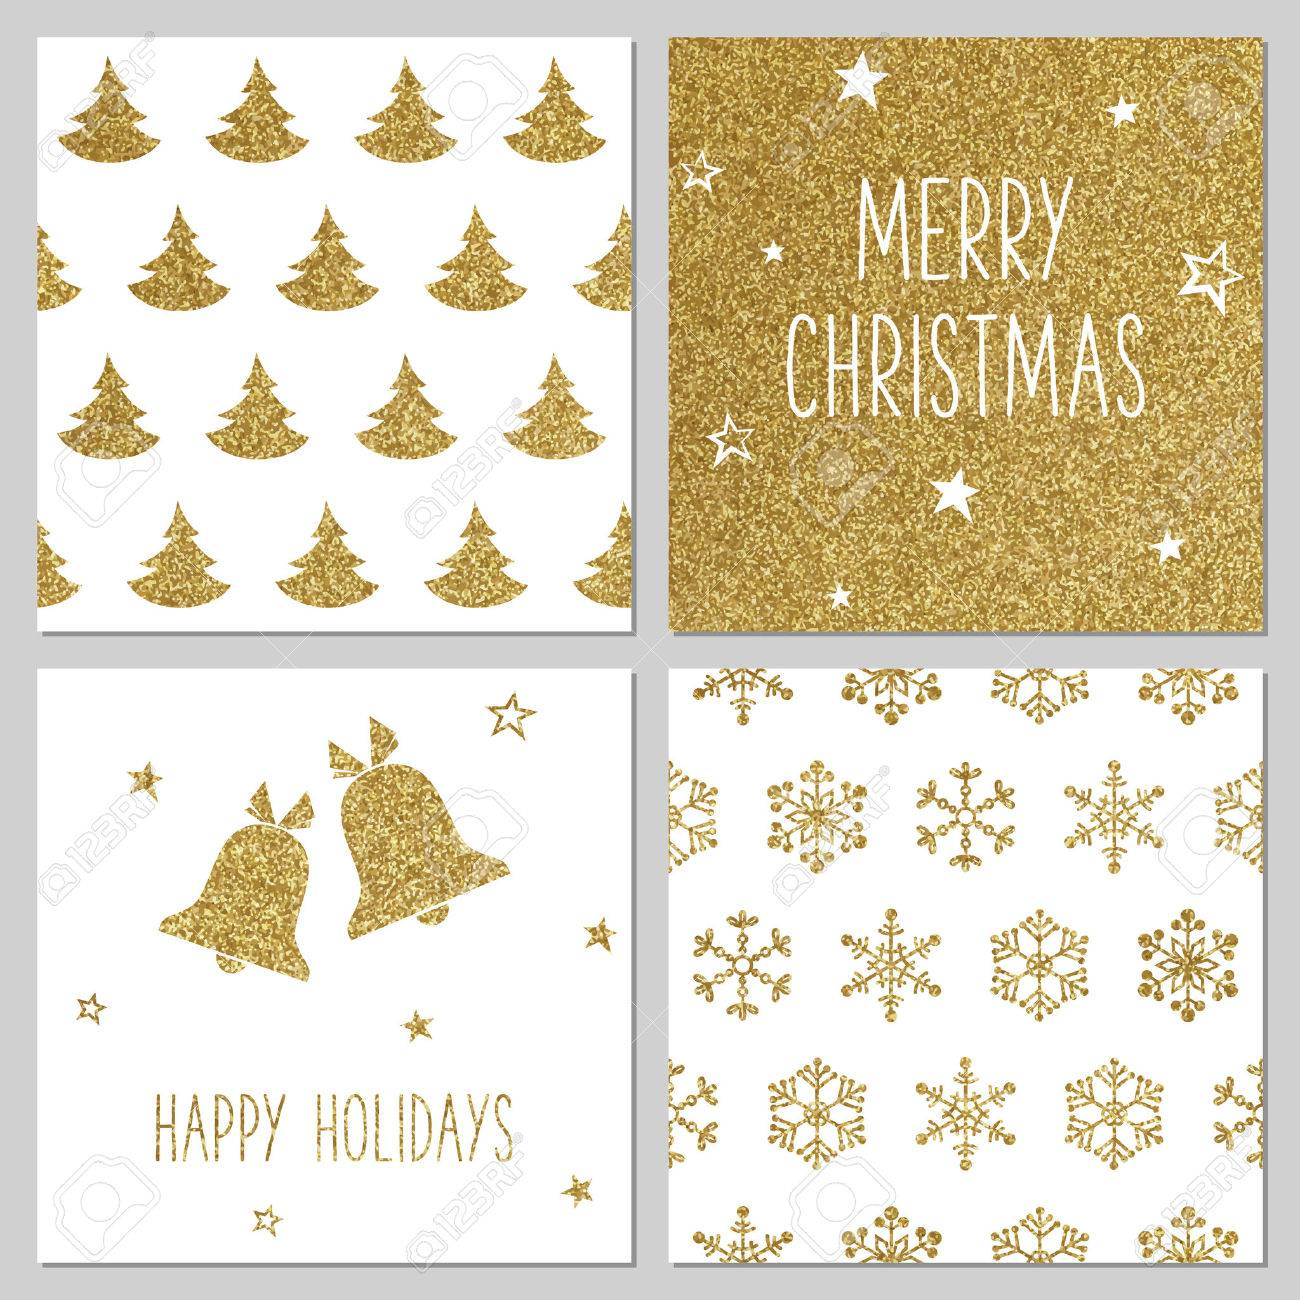 Christmas gold pattern, greeting card templates - 48202617